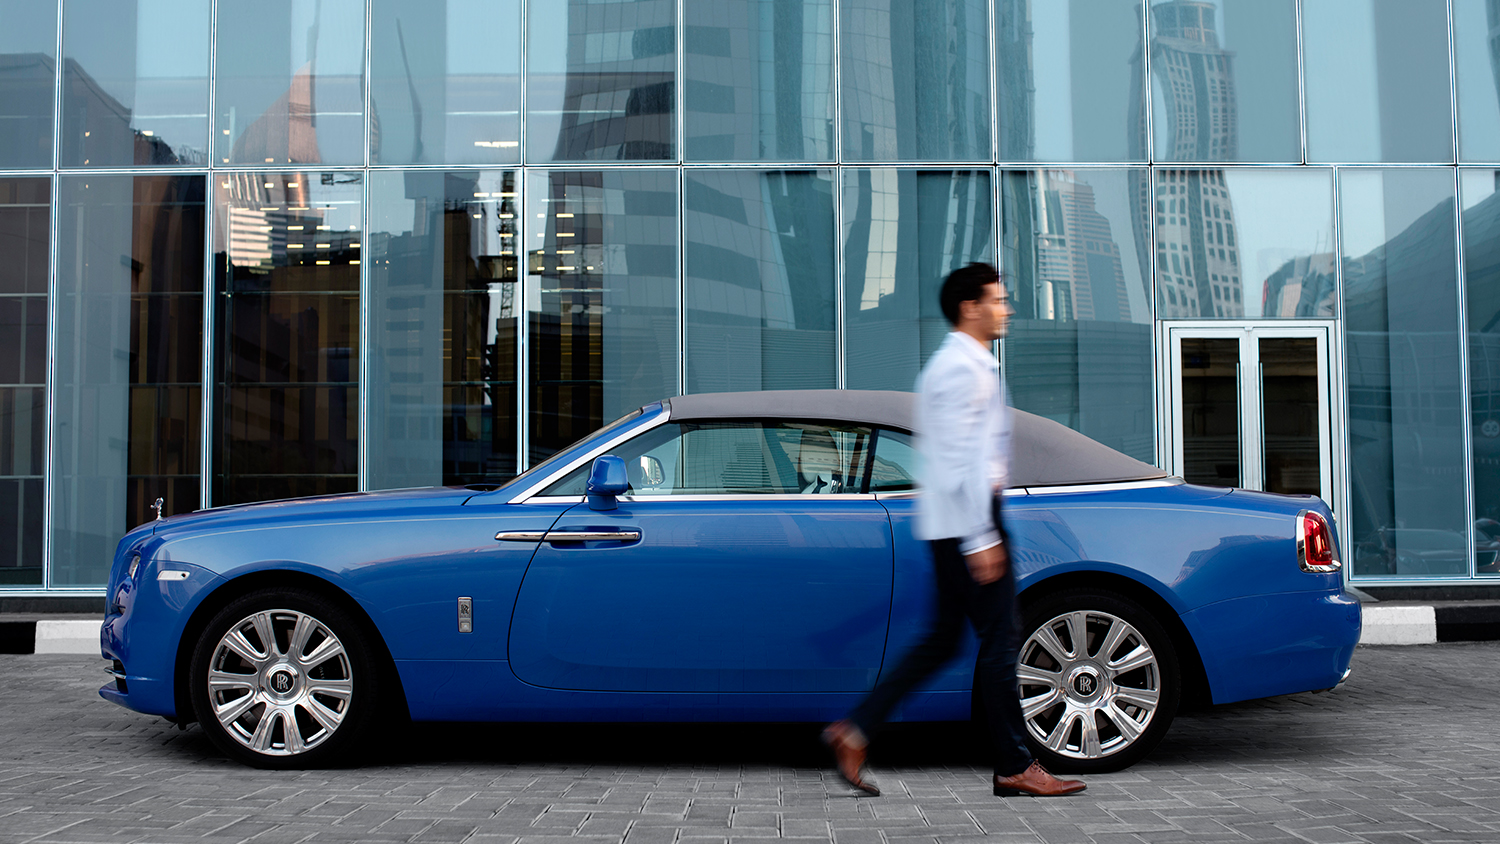 _Rolls_Royce_Exceptional_Encounter_1500x844px_07.jpg